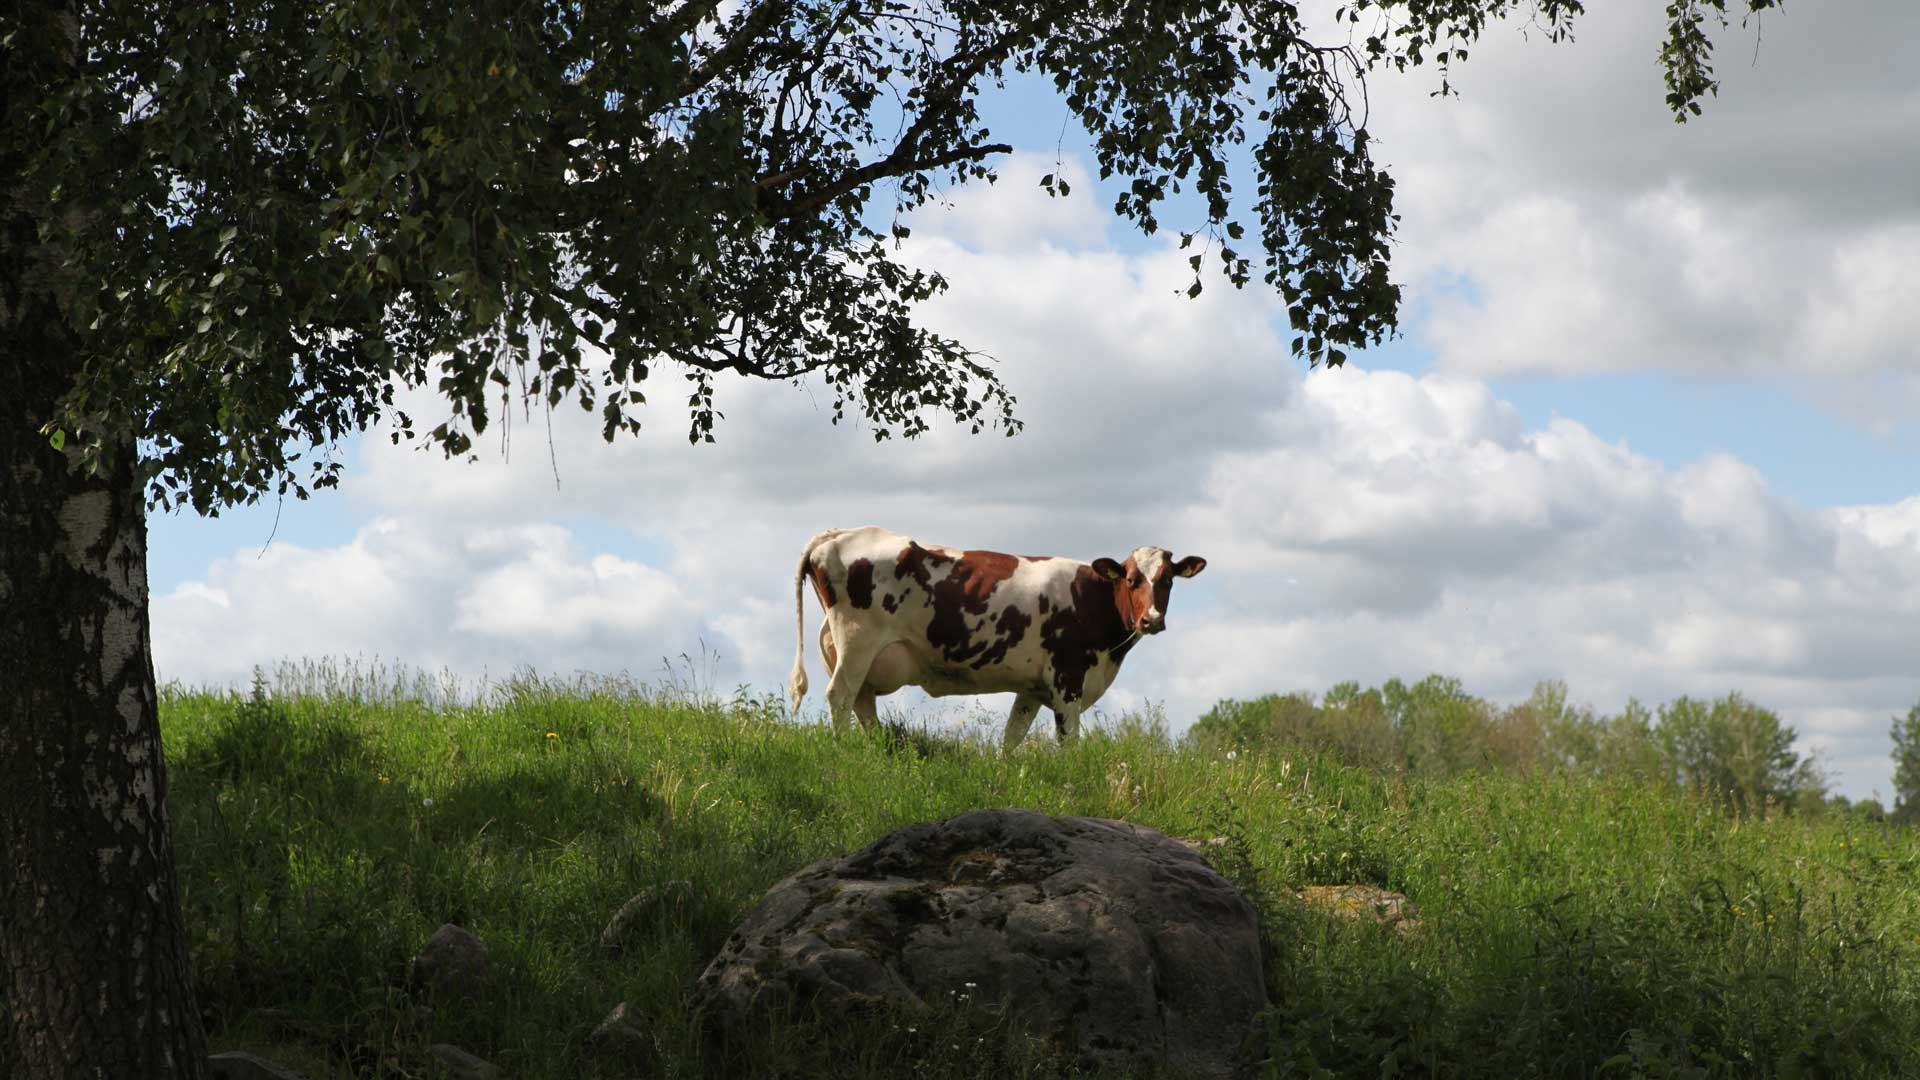 A cow standing on a hill